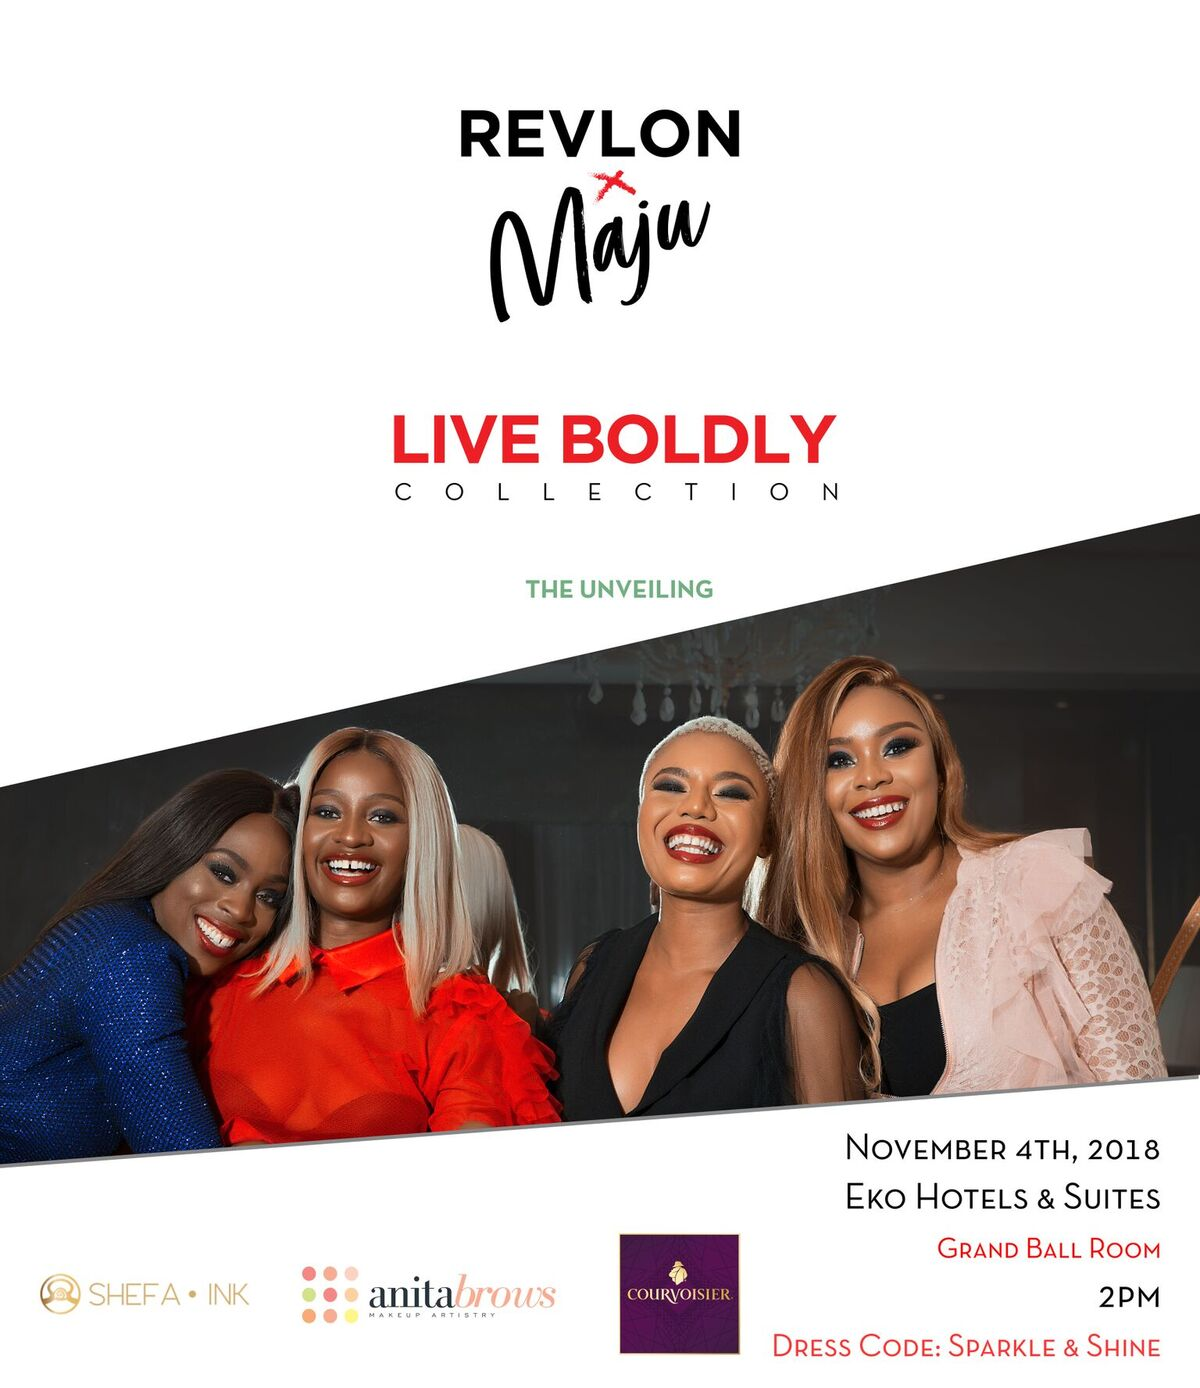 Revlon & Maju Just Released A Joint Campaign and We're Totally Here For It!